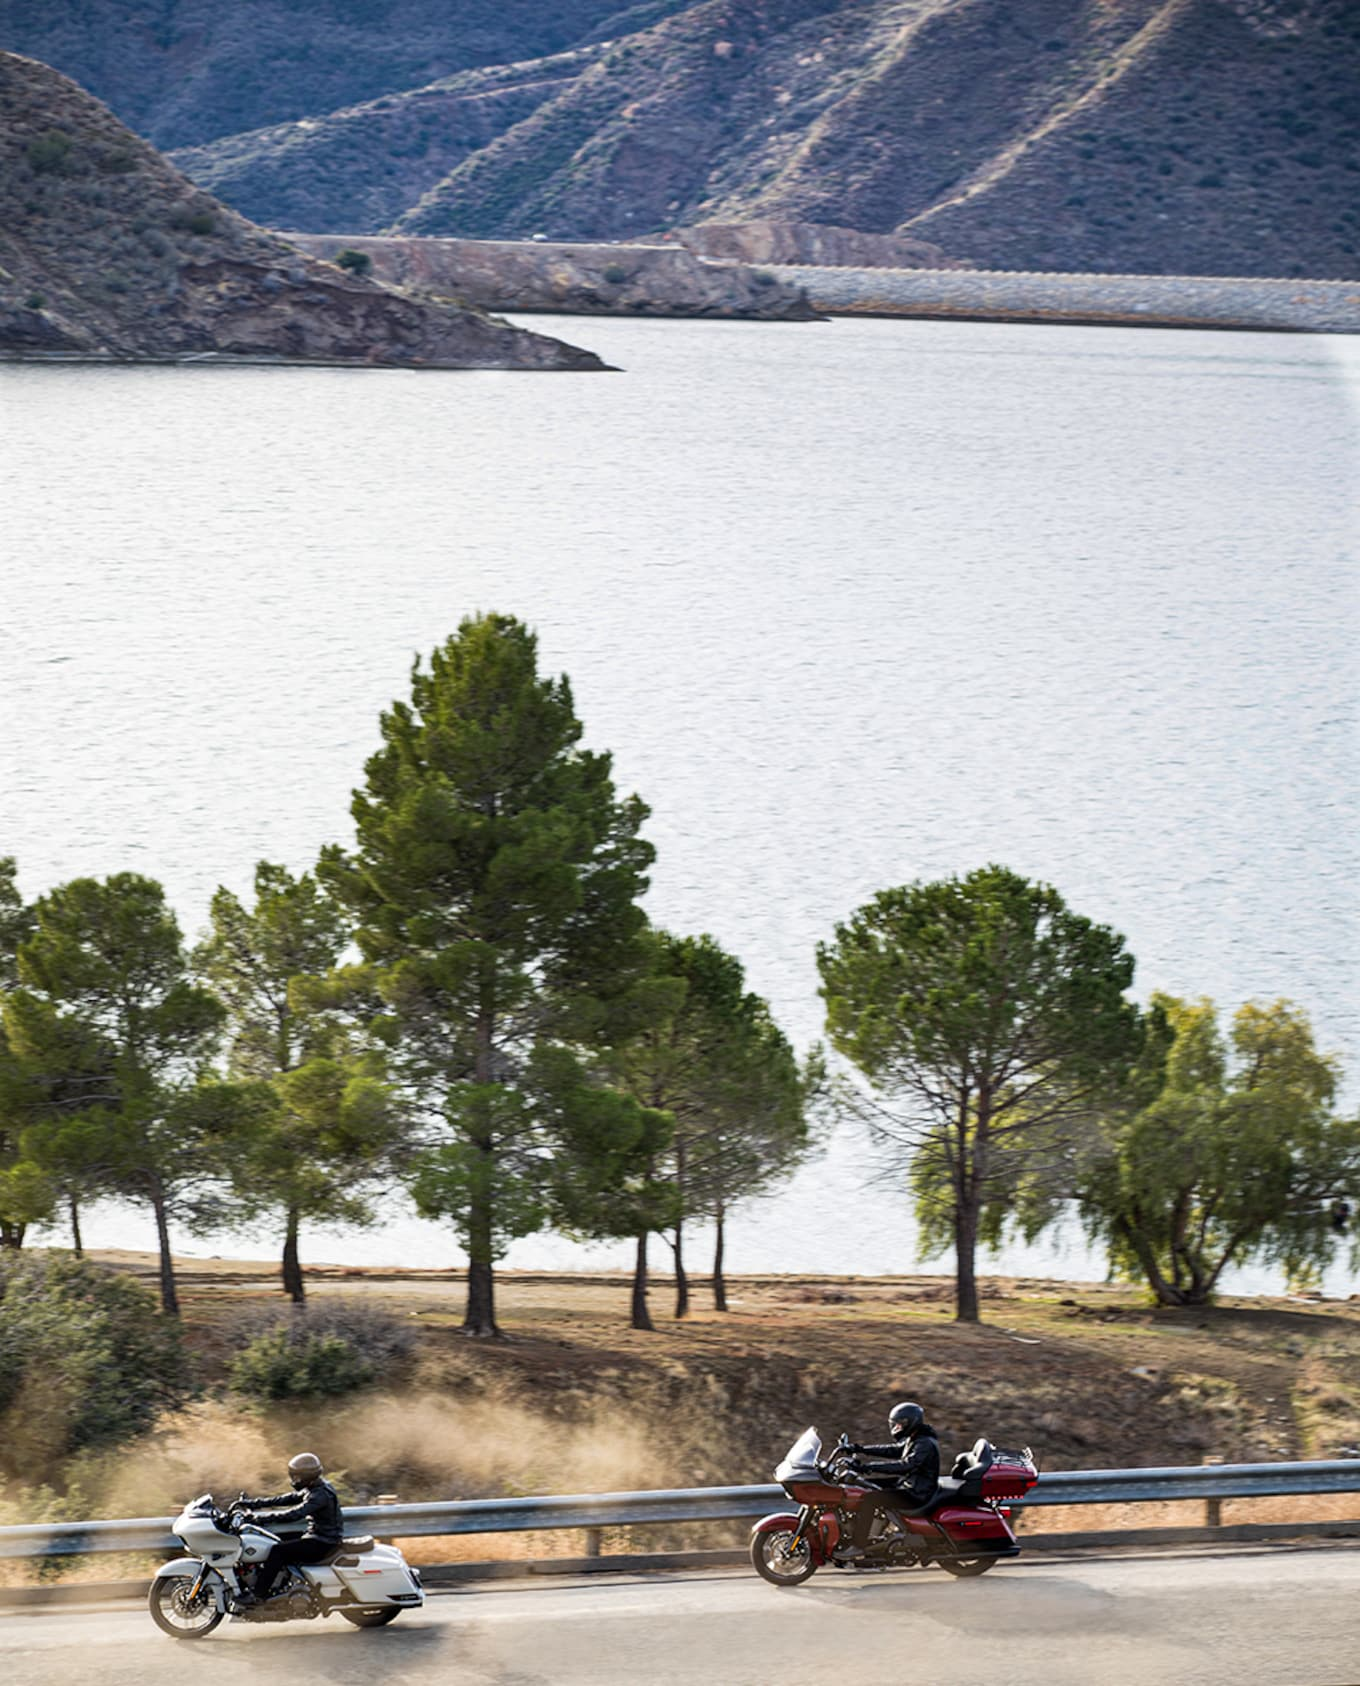 touring motorcycles riding near lake